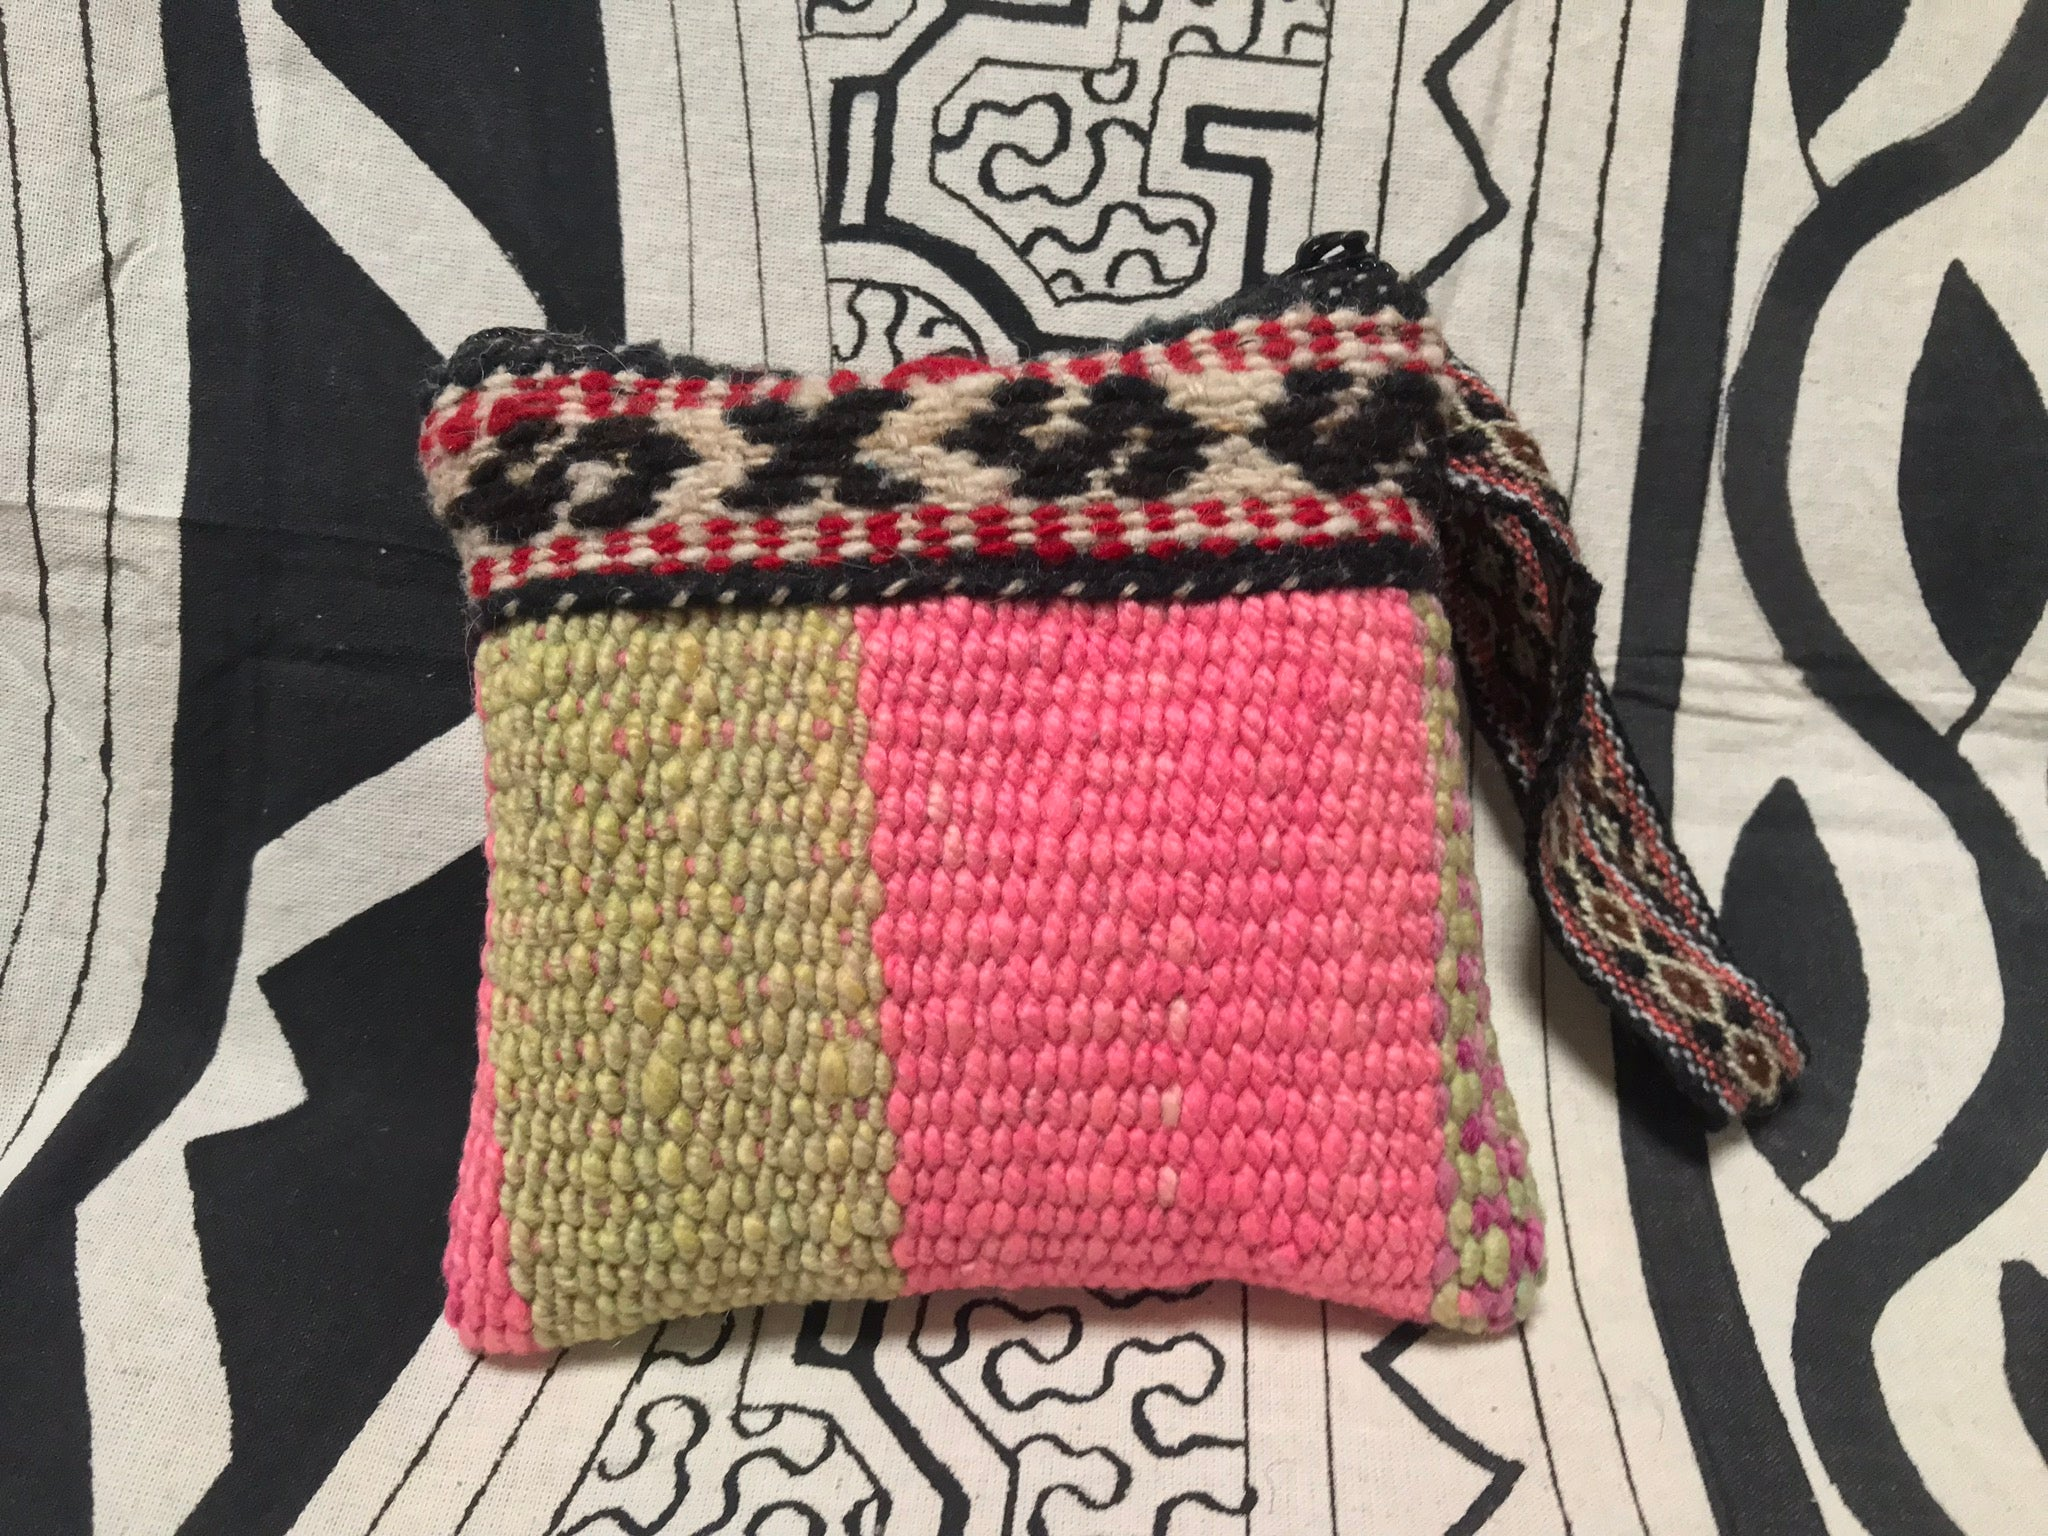 Mini Fair Trade Upcycled Andean Woven Pouch